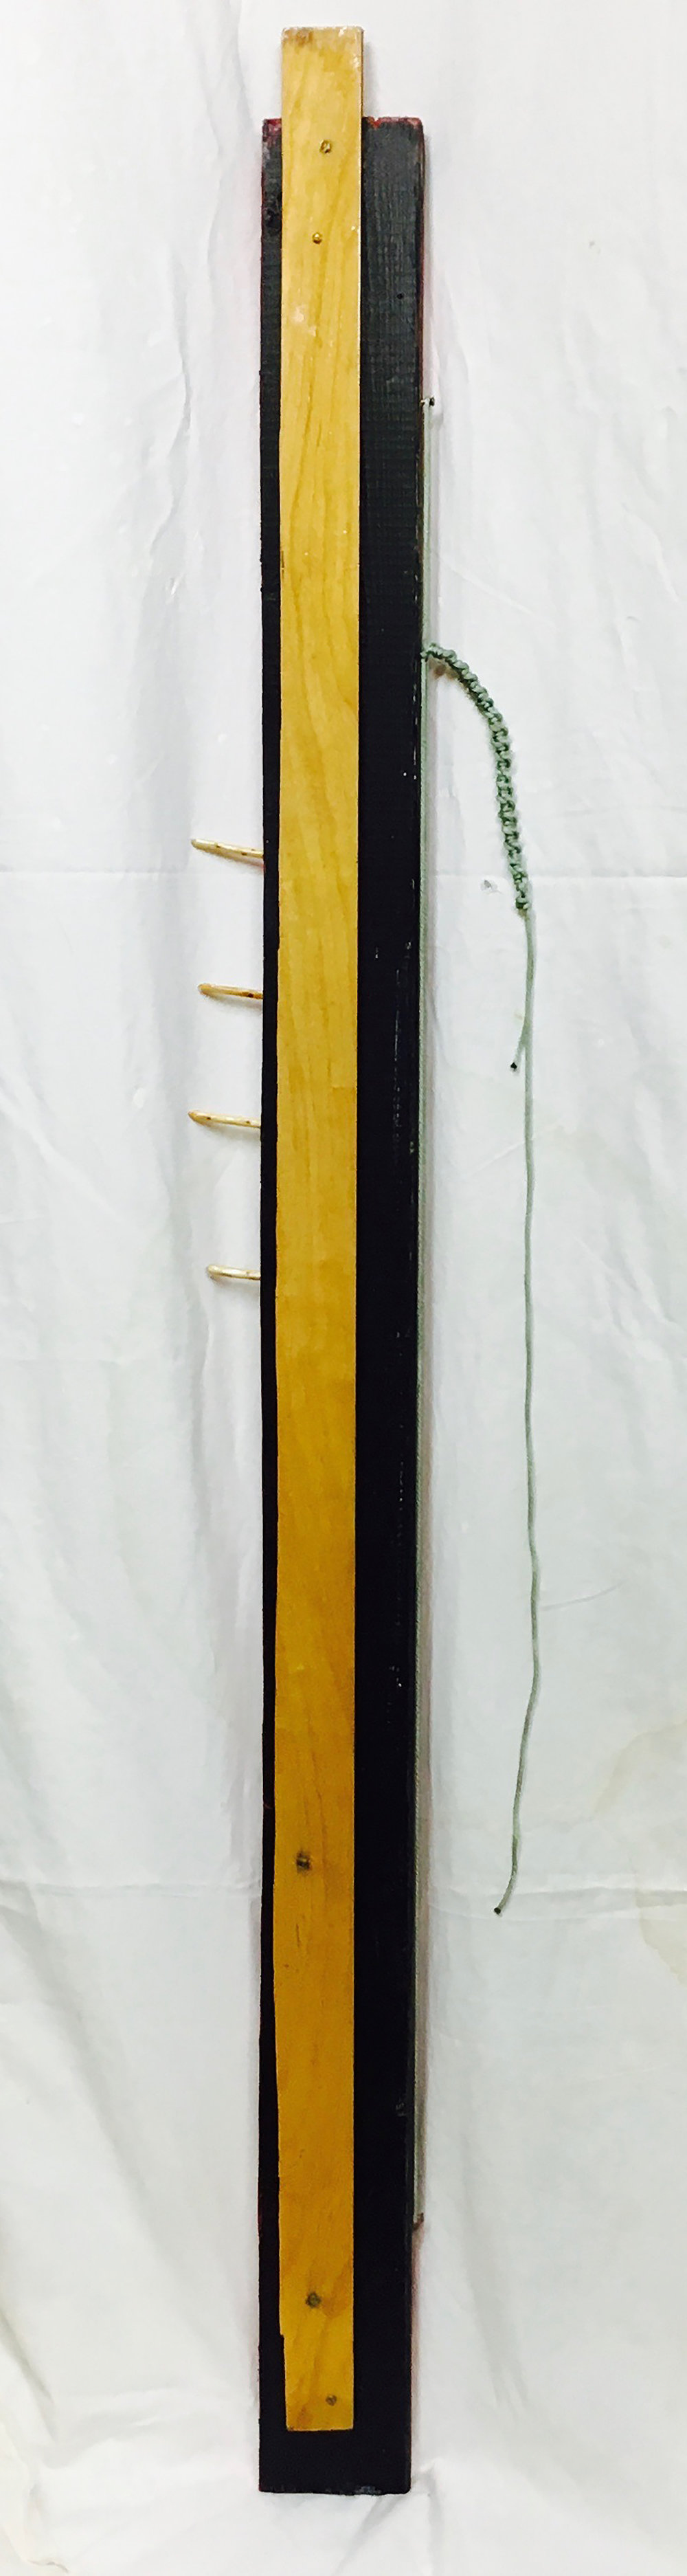 "#Day24520 - Emory Village Stele 2017  · found wood, cedar pegs, brass screws, rope, varnish, paint · 69""x9.5""x2"""